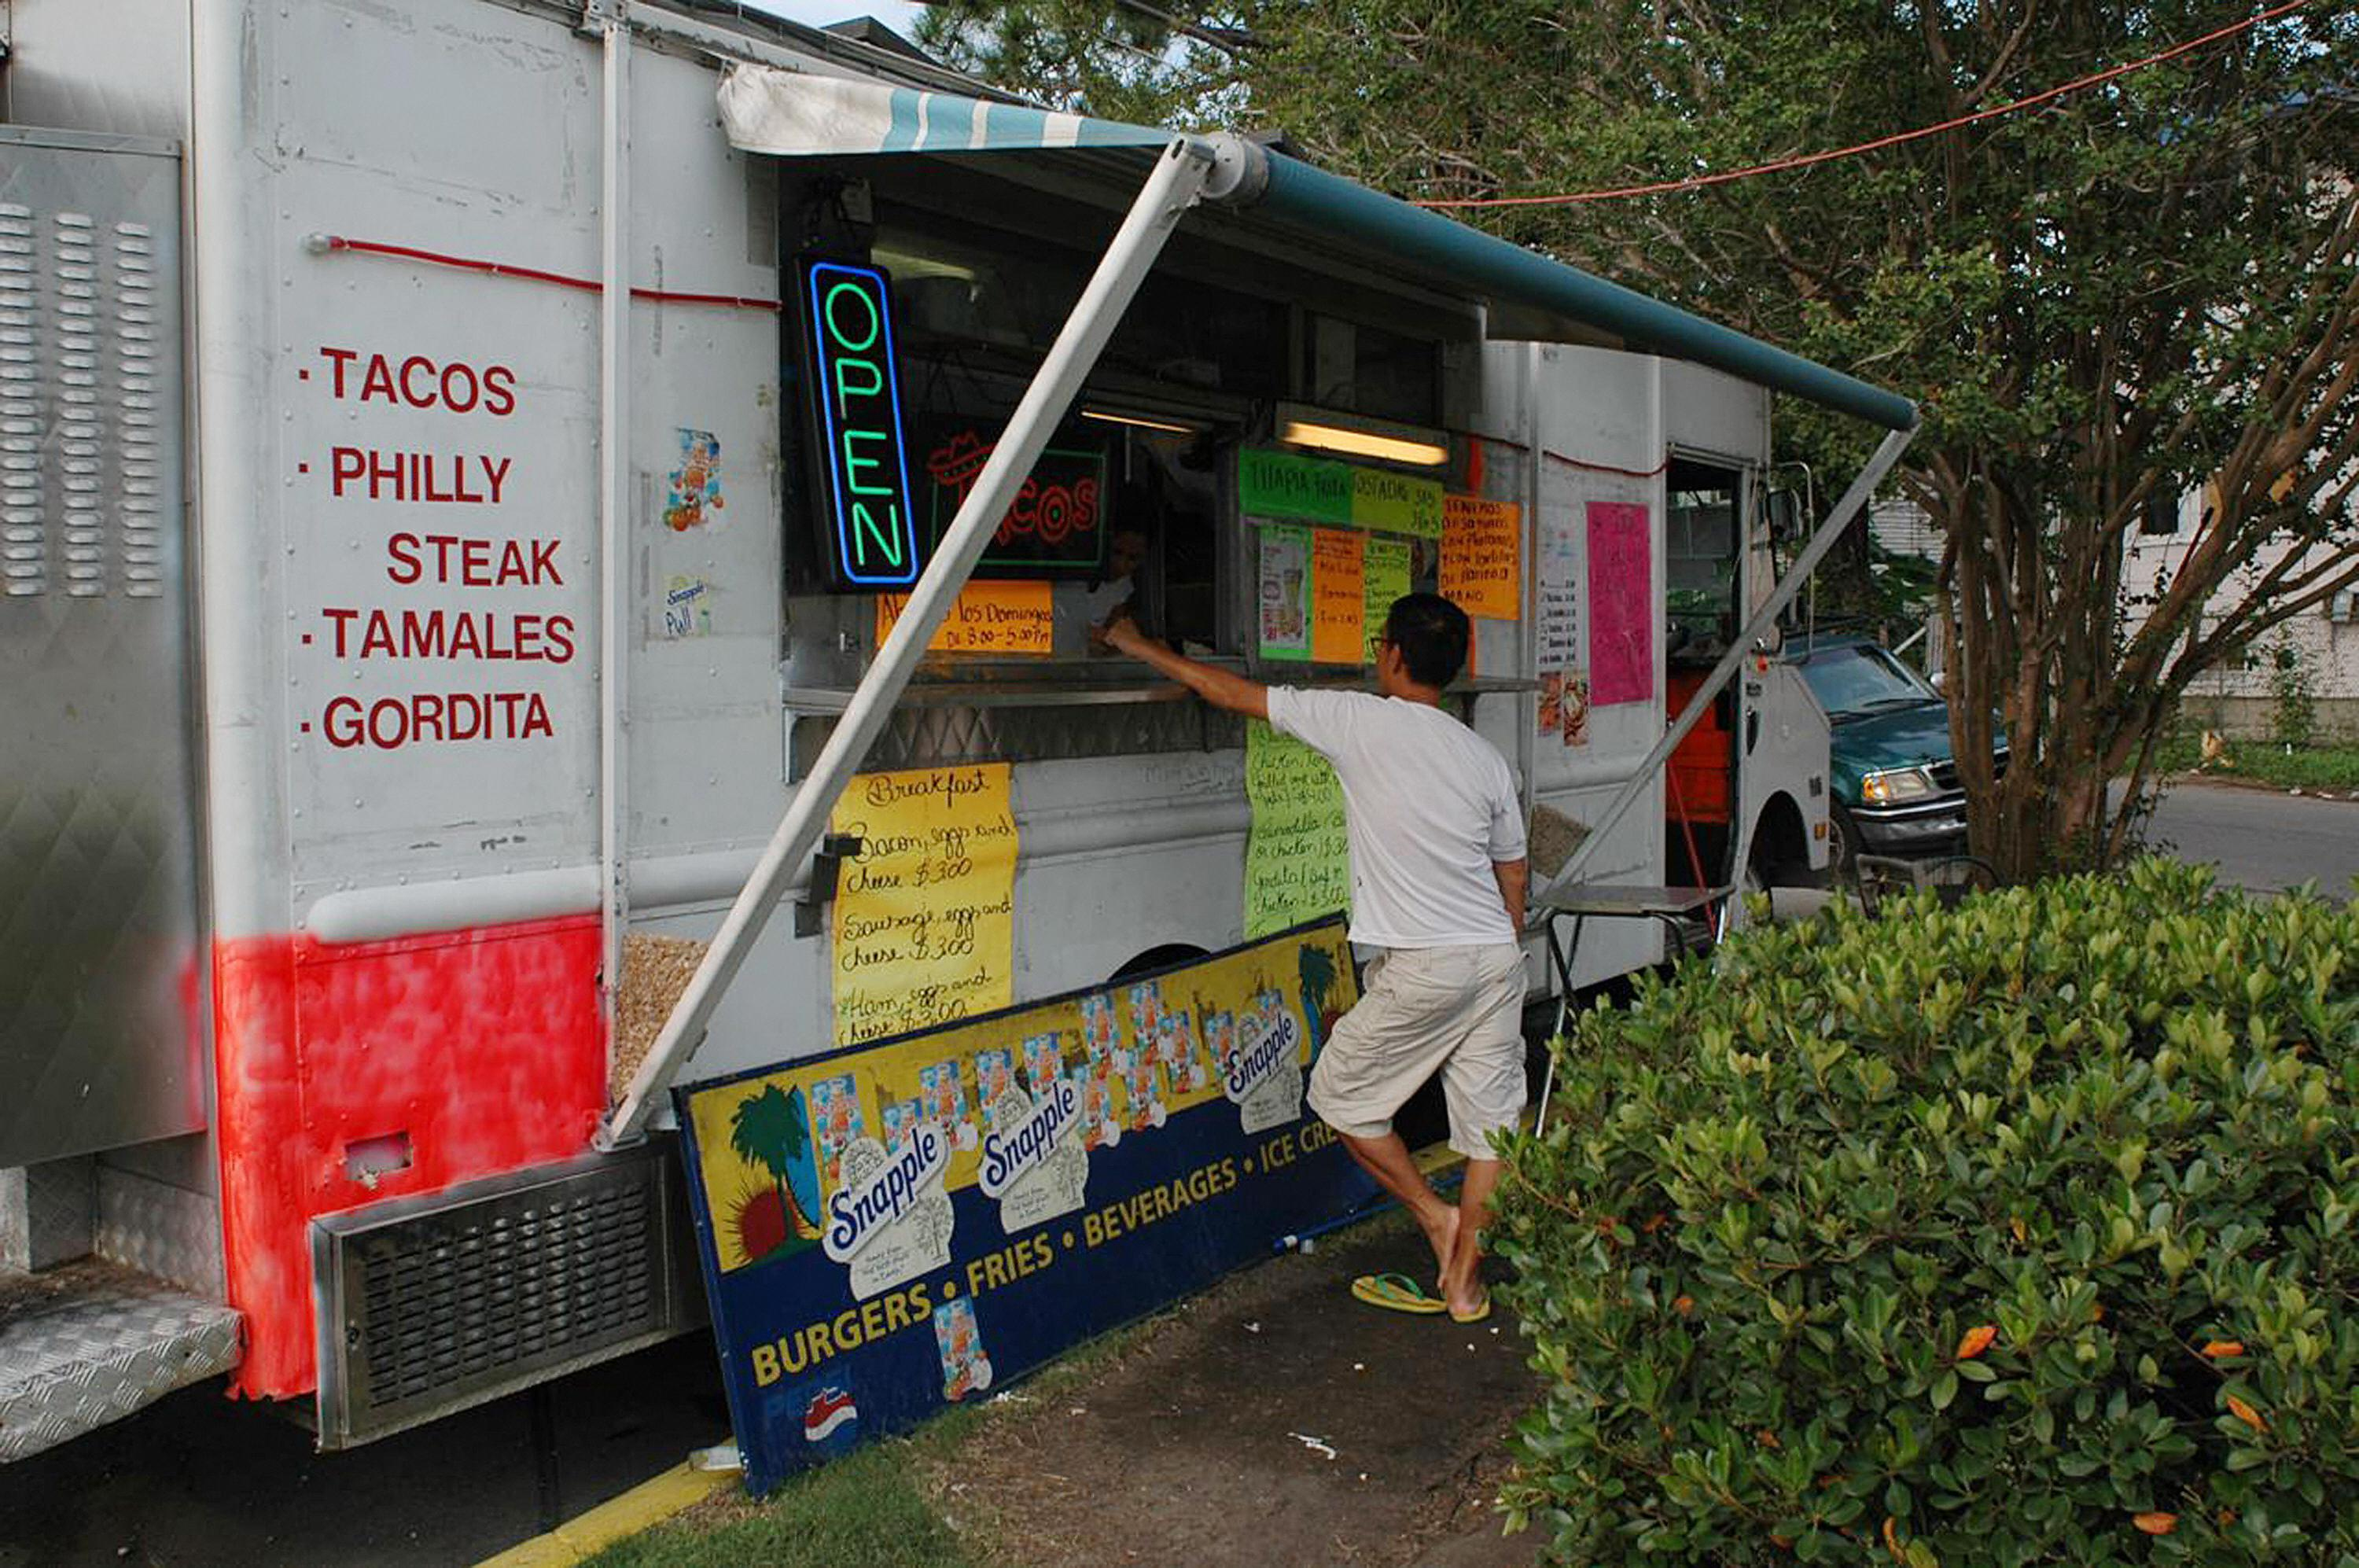 A customer buys food at a mobile Taqueria in New Orleans.